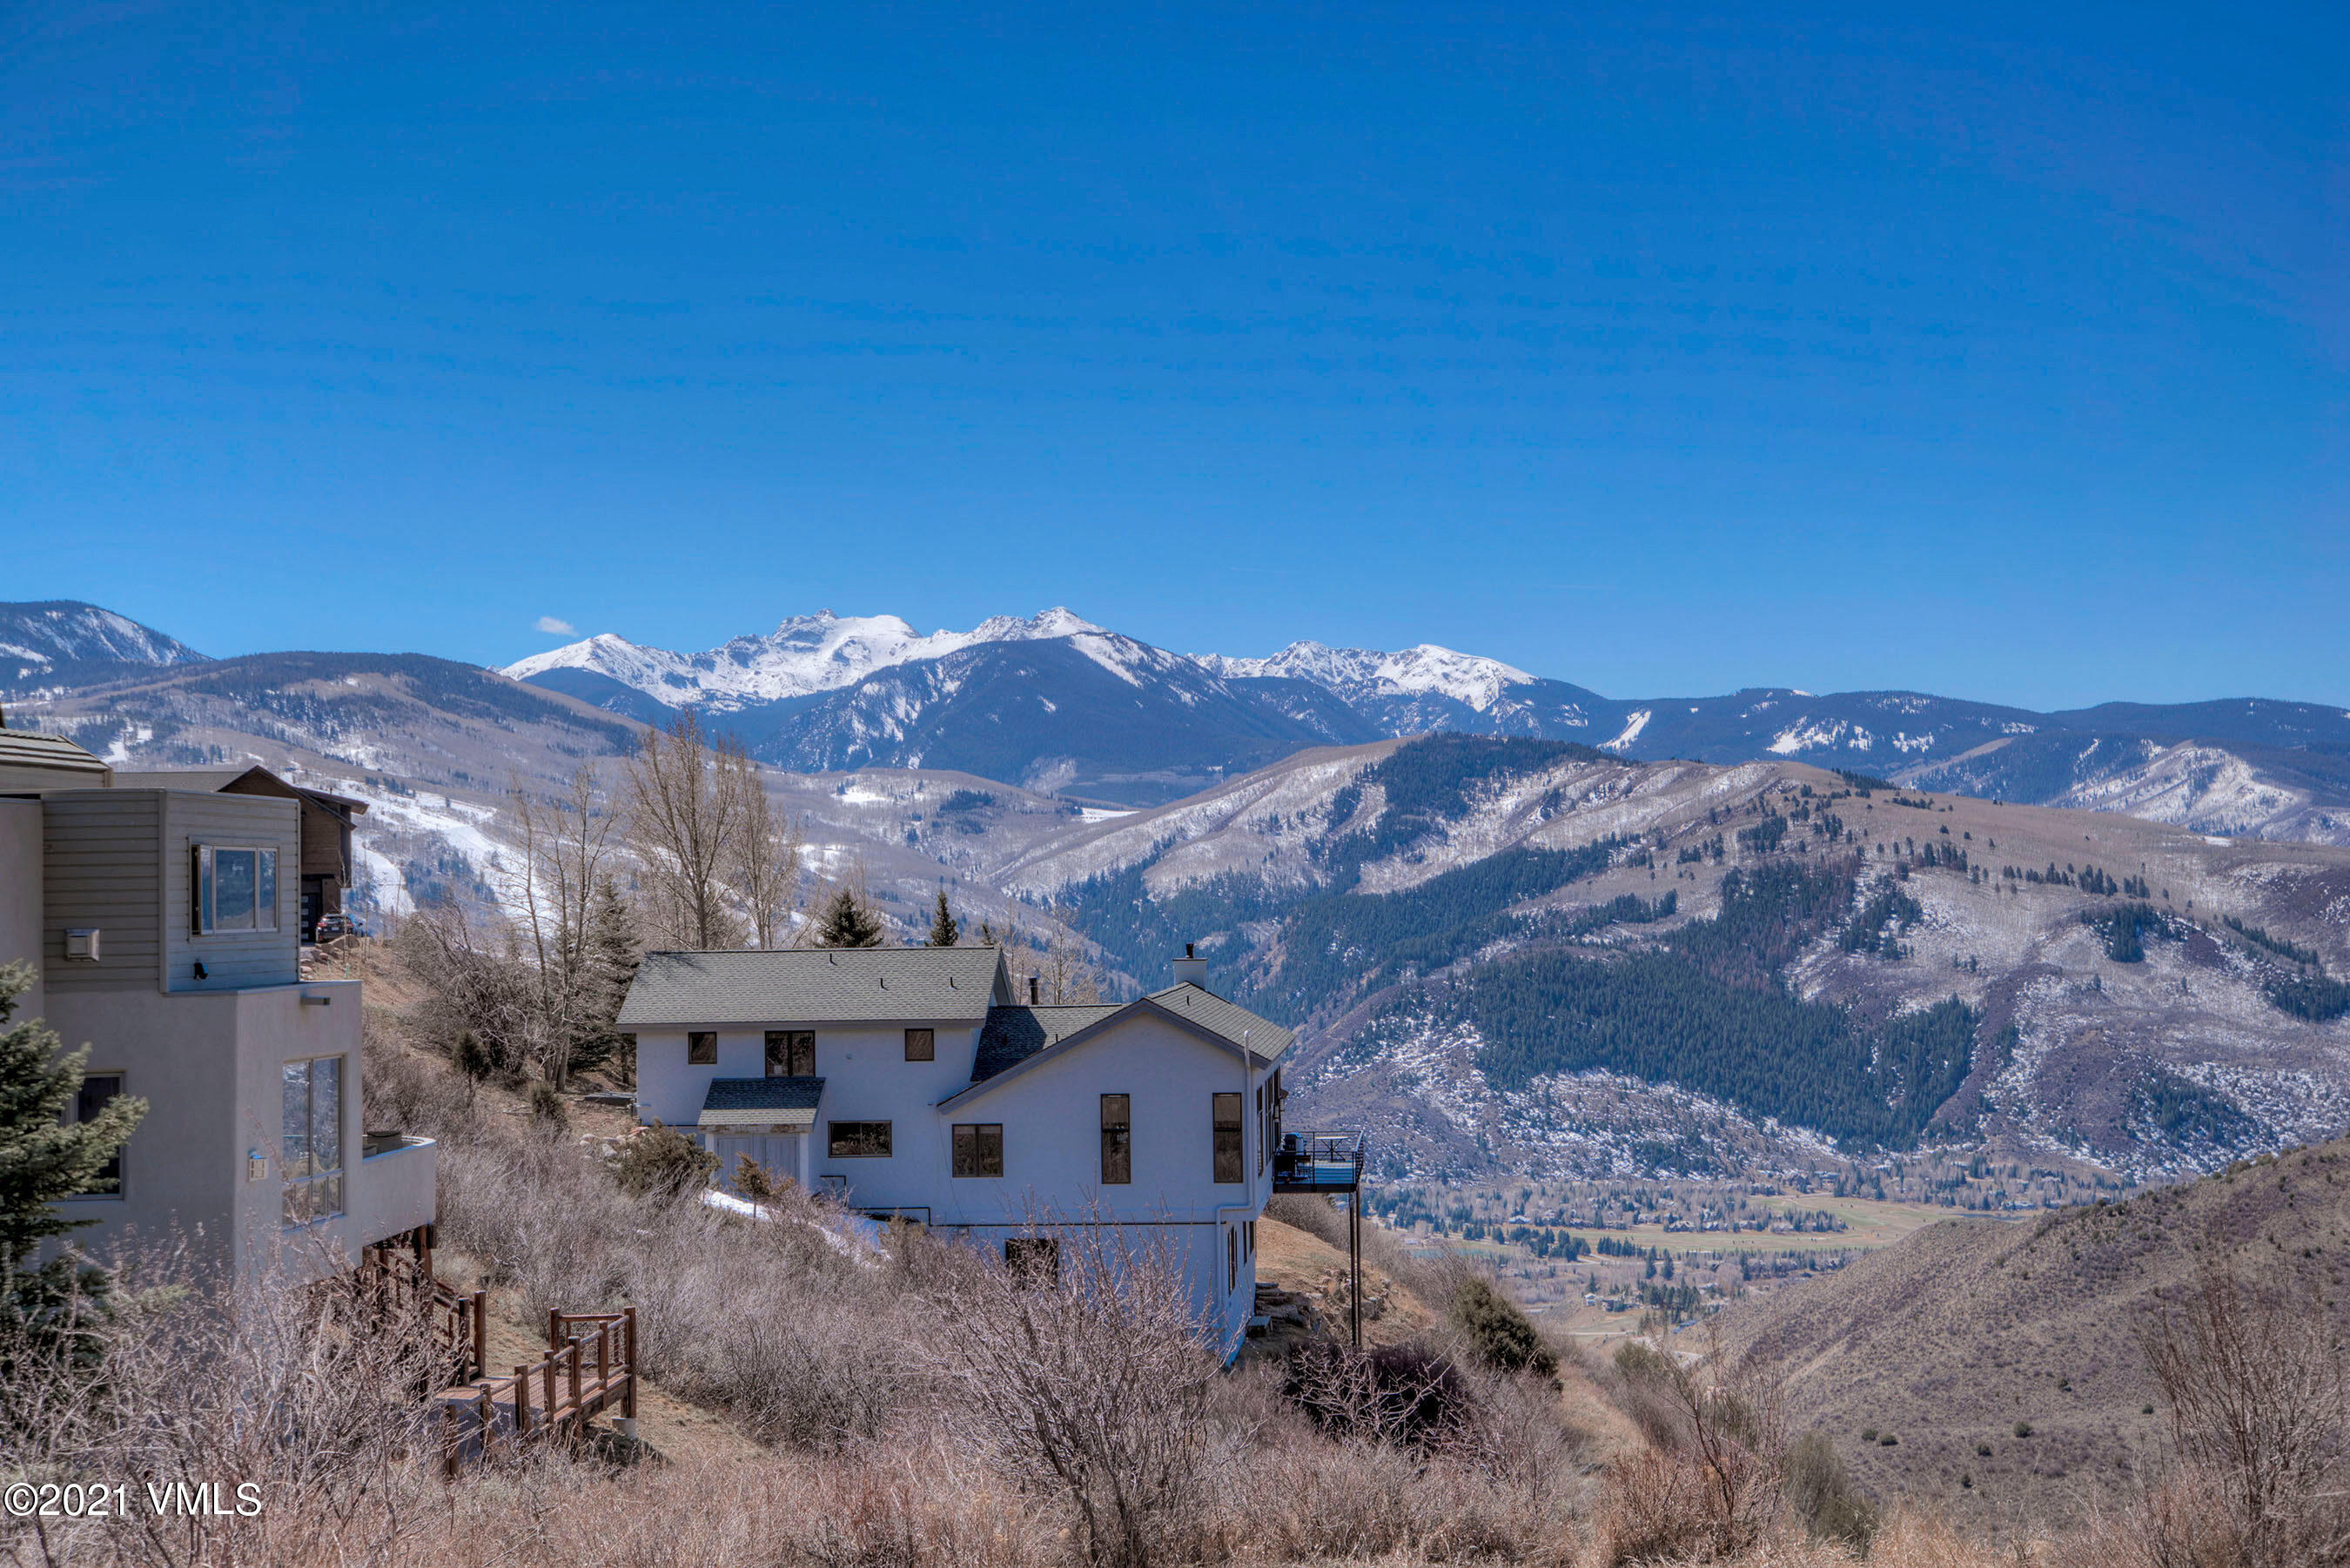 Admire incomparable views of Beaver Creek, Arrowhead, and the New York Range from this incredible single-family log home on almost an acre located in the Vail Valley.  Breathtaking mountain landscapes from every room.  Rare large yard with expansive deck.  Take in the commanding panorama with your morning coffee and dinner at sunset.  Four bedrooms, three baths with separate living areas, a big loft, and a two-car garage. The fireplace is central to the main living area and dining room.  Custom closets have been added throughout the home--new hardwood floors on the main level.  Easy access to pristine Wildridge mountain bike and hiking trails - an exceptional location for outdoor enthusiasts.